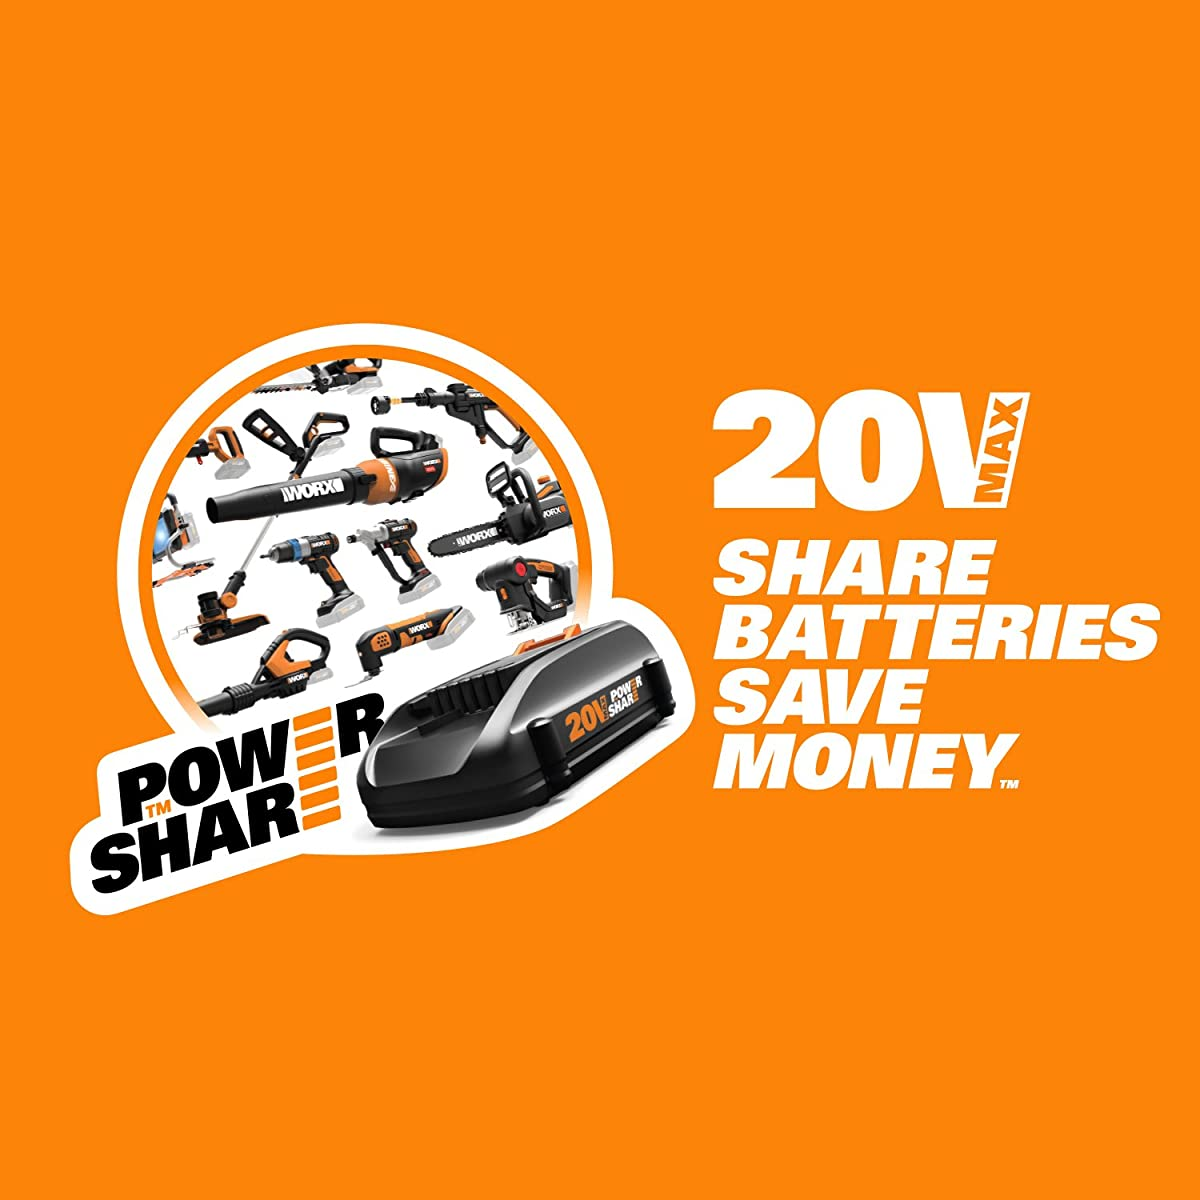 WORX WG546 TURBINE 20V Cordless Blower/Sweeper with 340 CFM 2-Speed Axial Fan, Battery and Charger Included